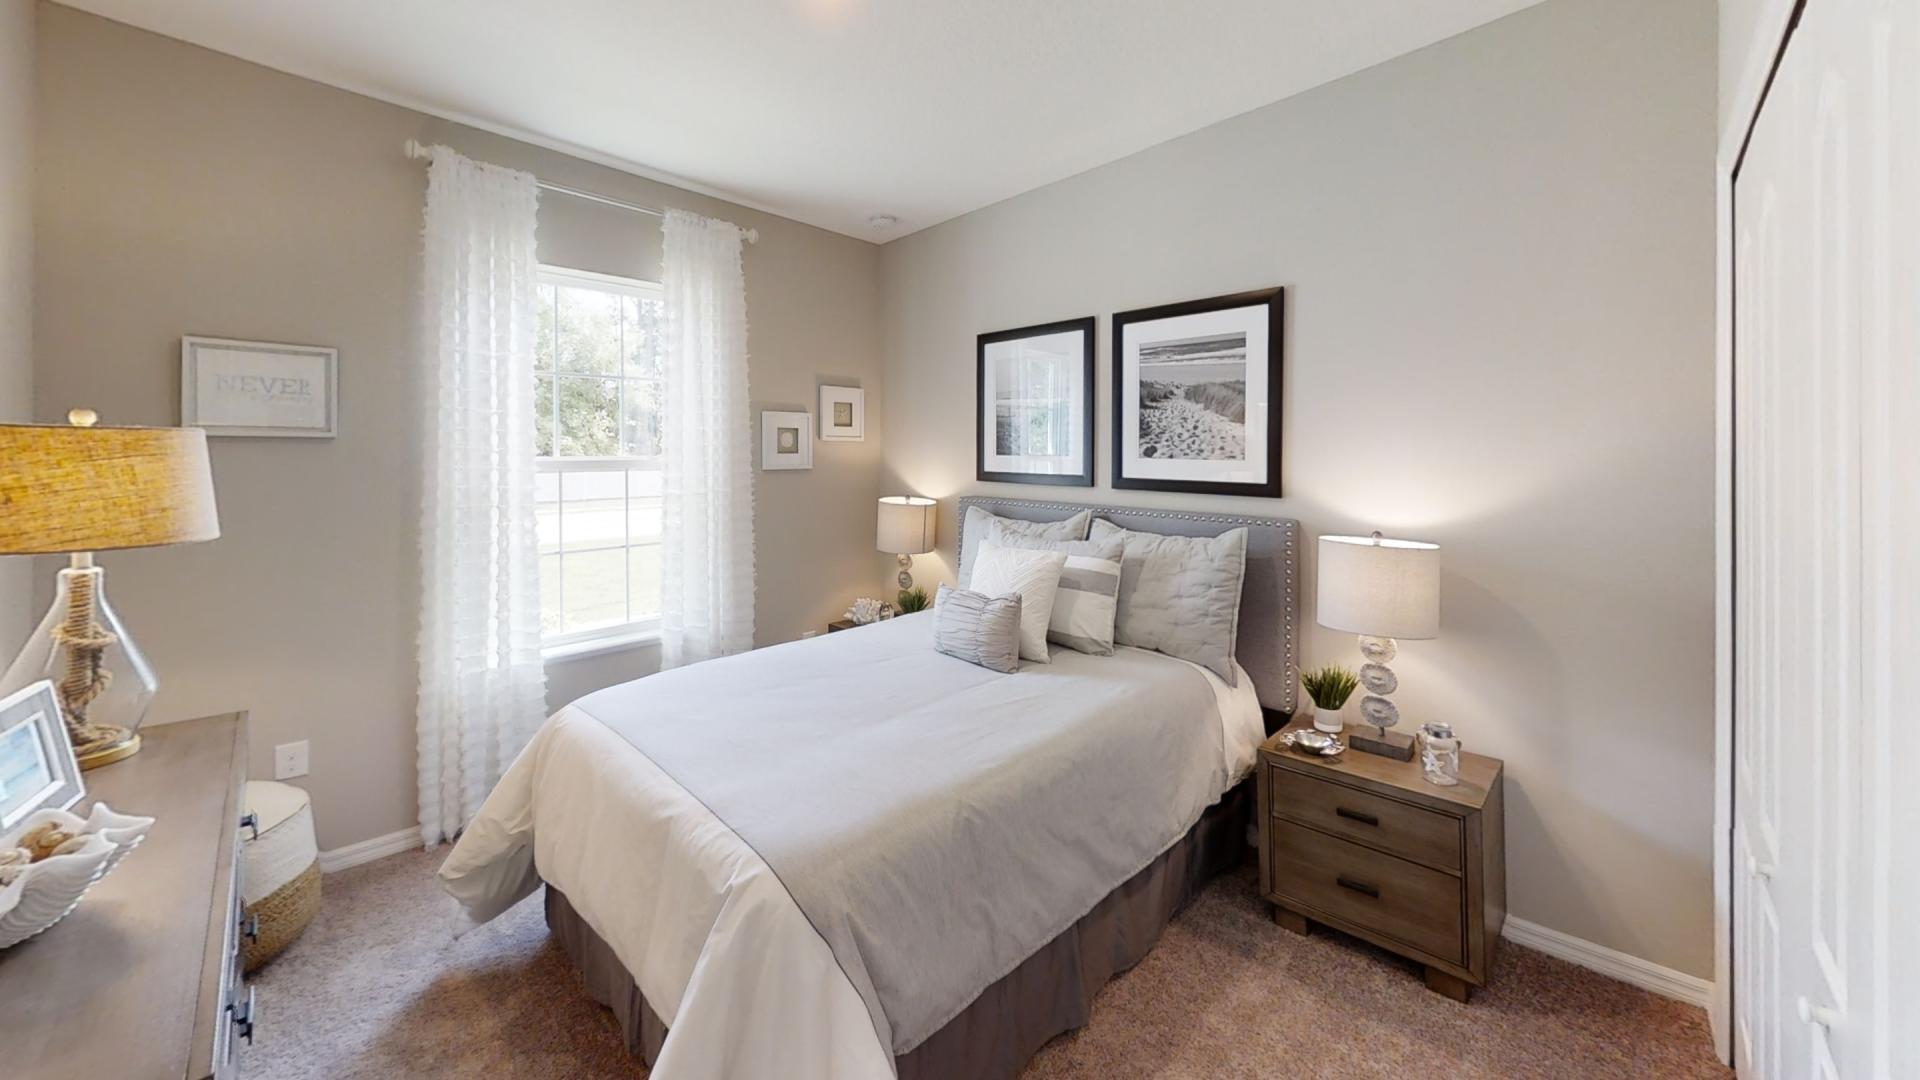 Bedroom featured in the Mesquite By Maronda Homes in Ocala, FL